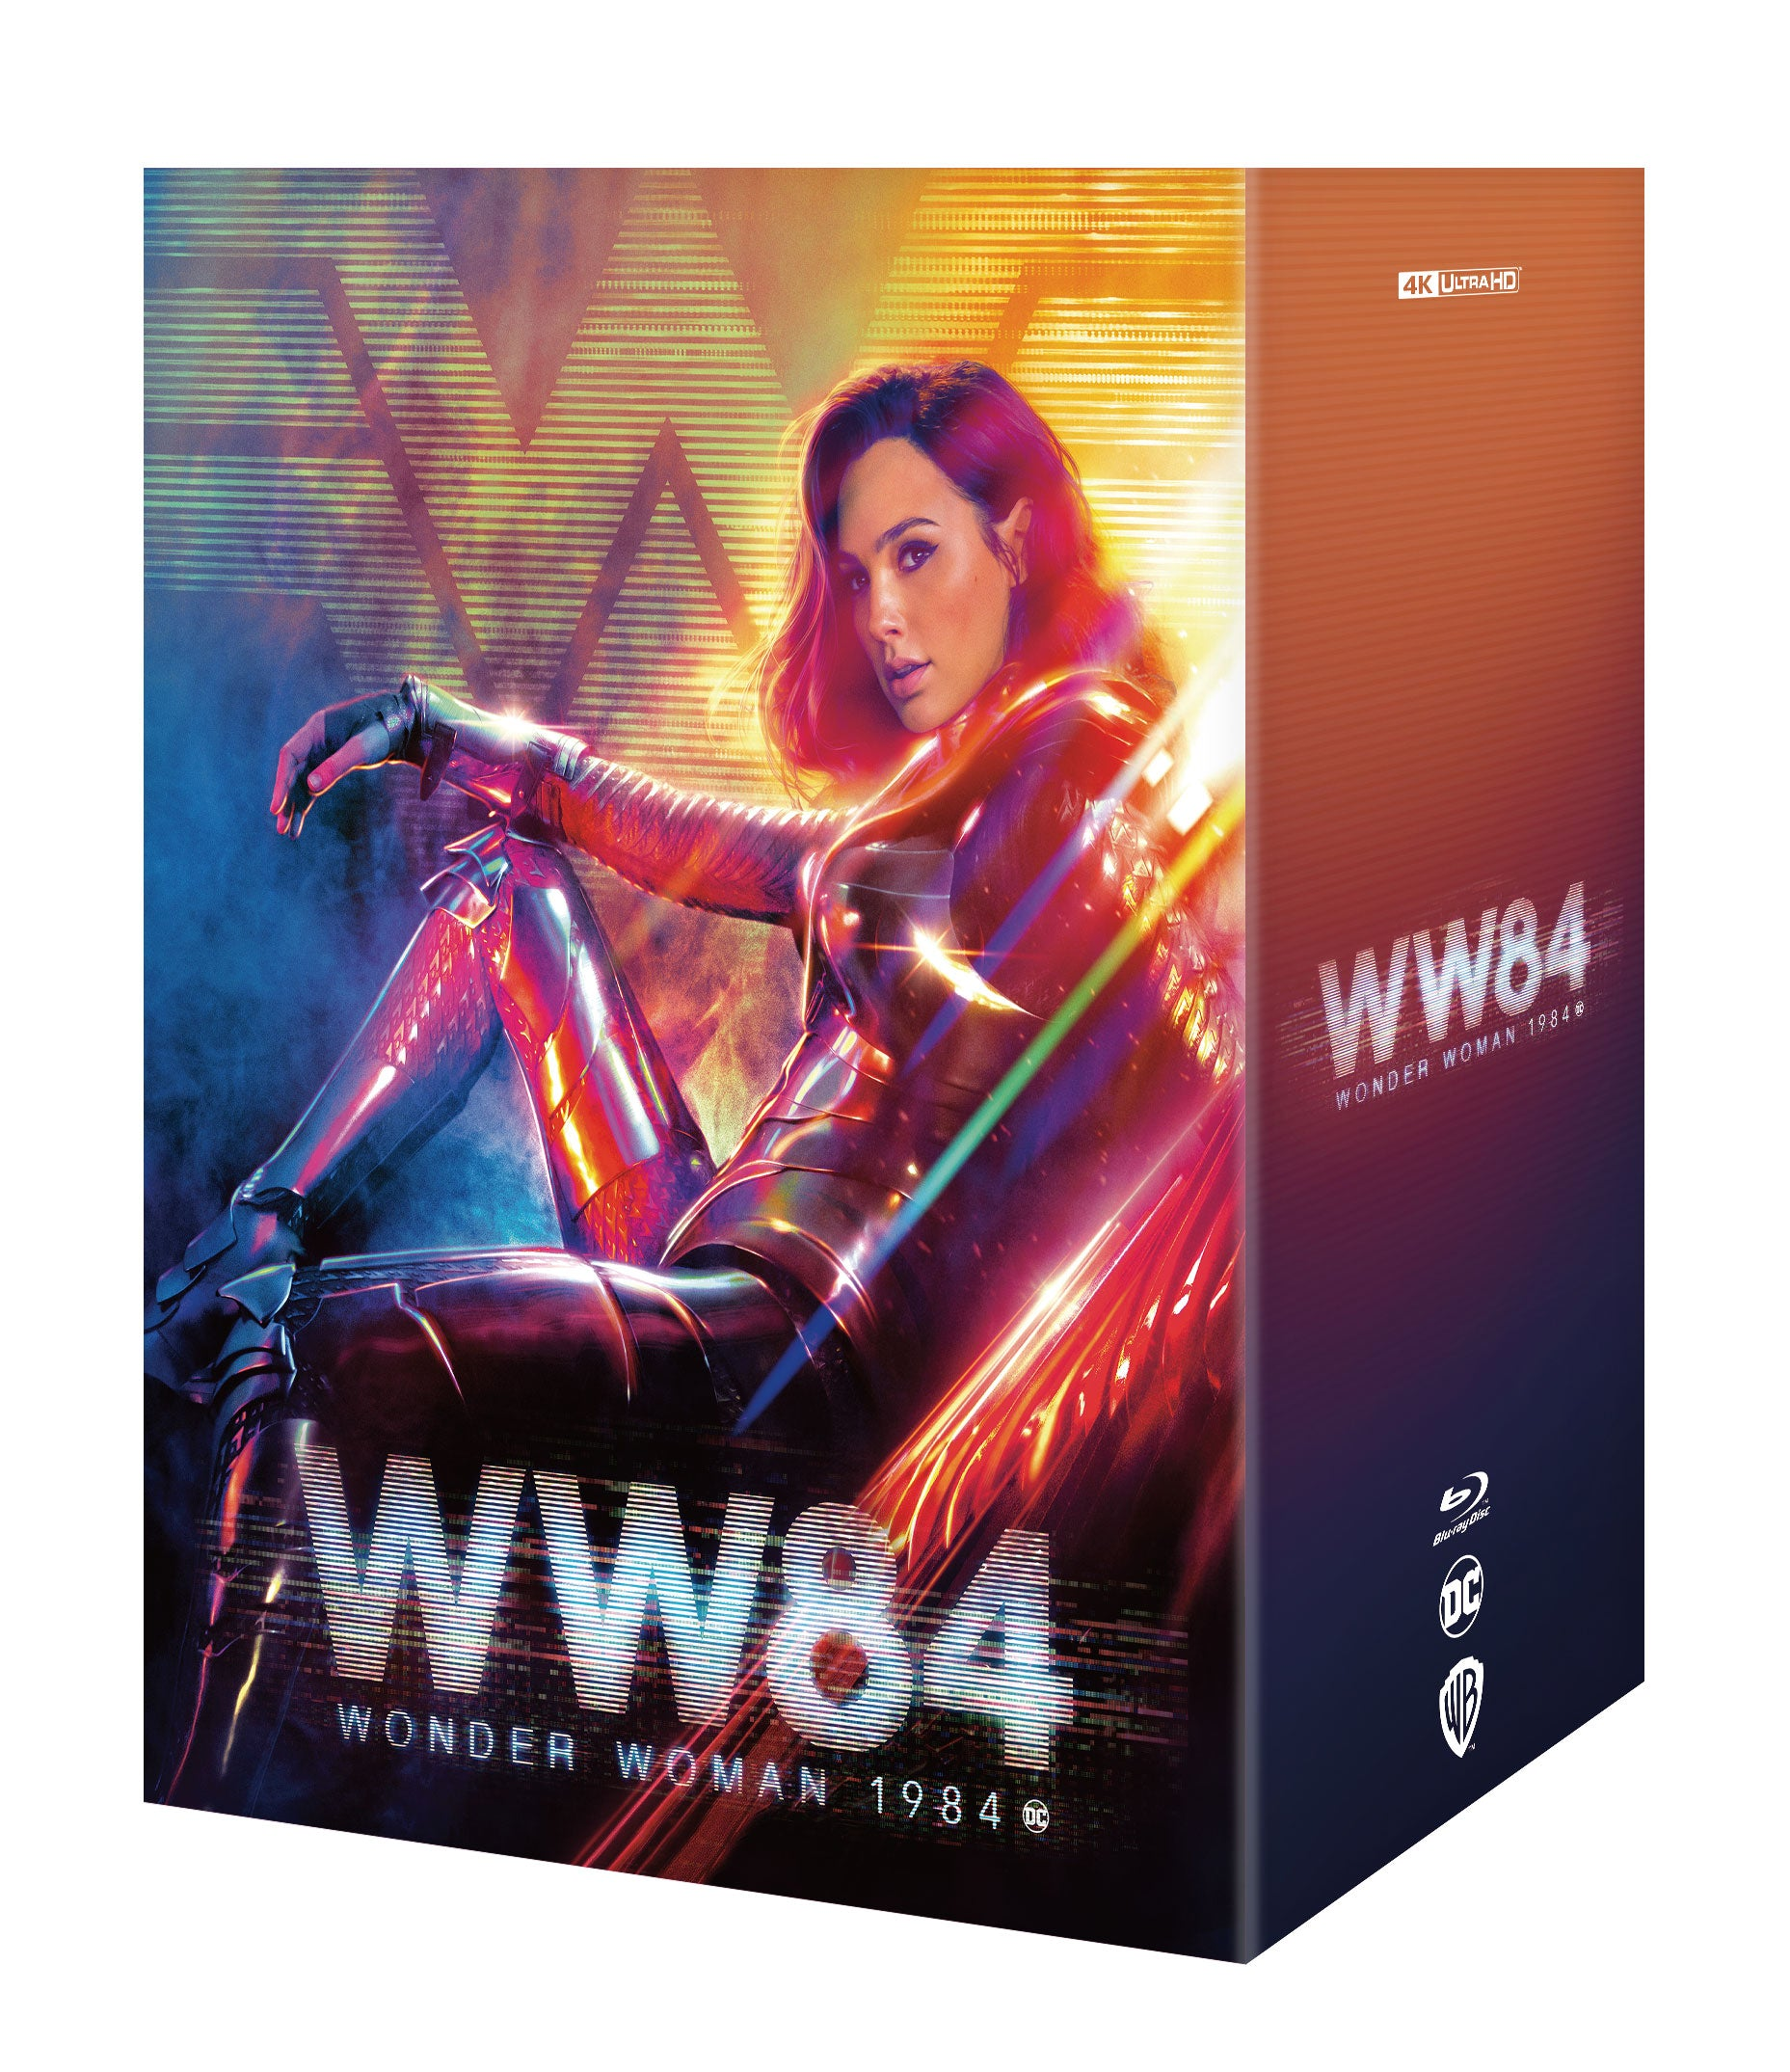 [ME#38] Wonder Woman 1984 Steelbook (One Click)